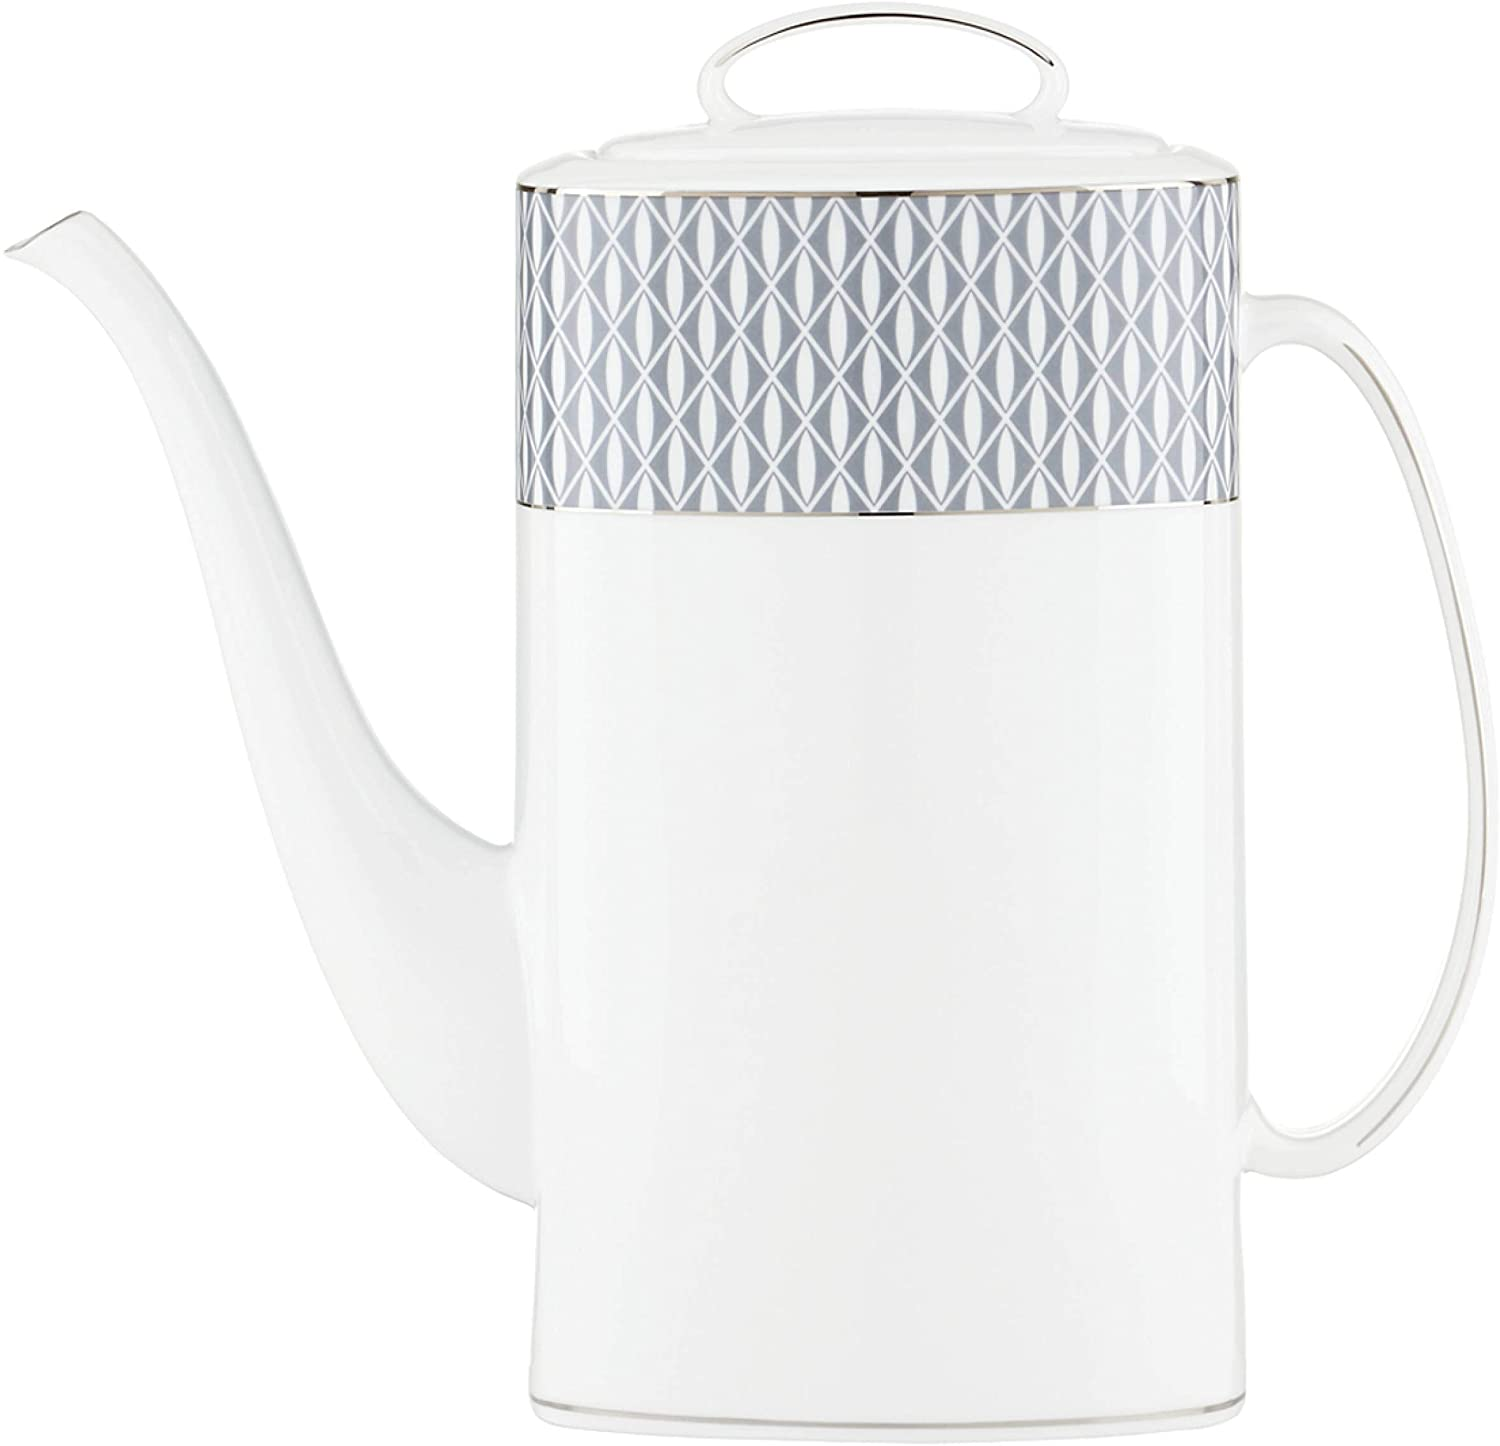 Kate Spade New York Mercer Drive coffeepot and lid